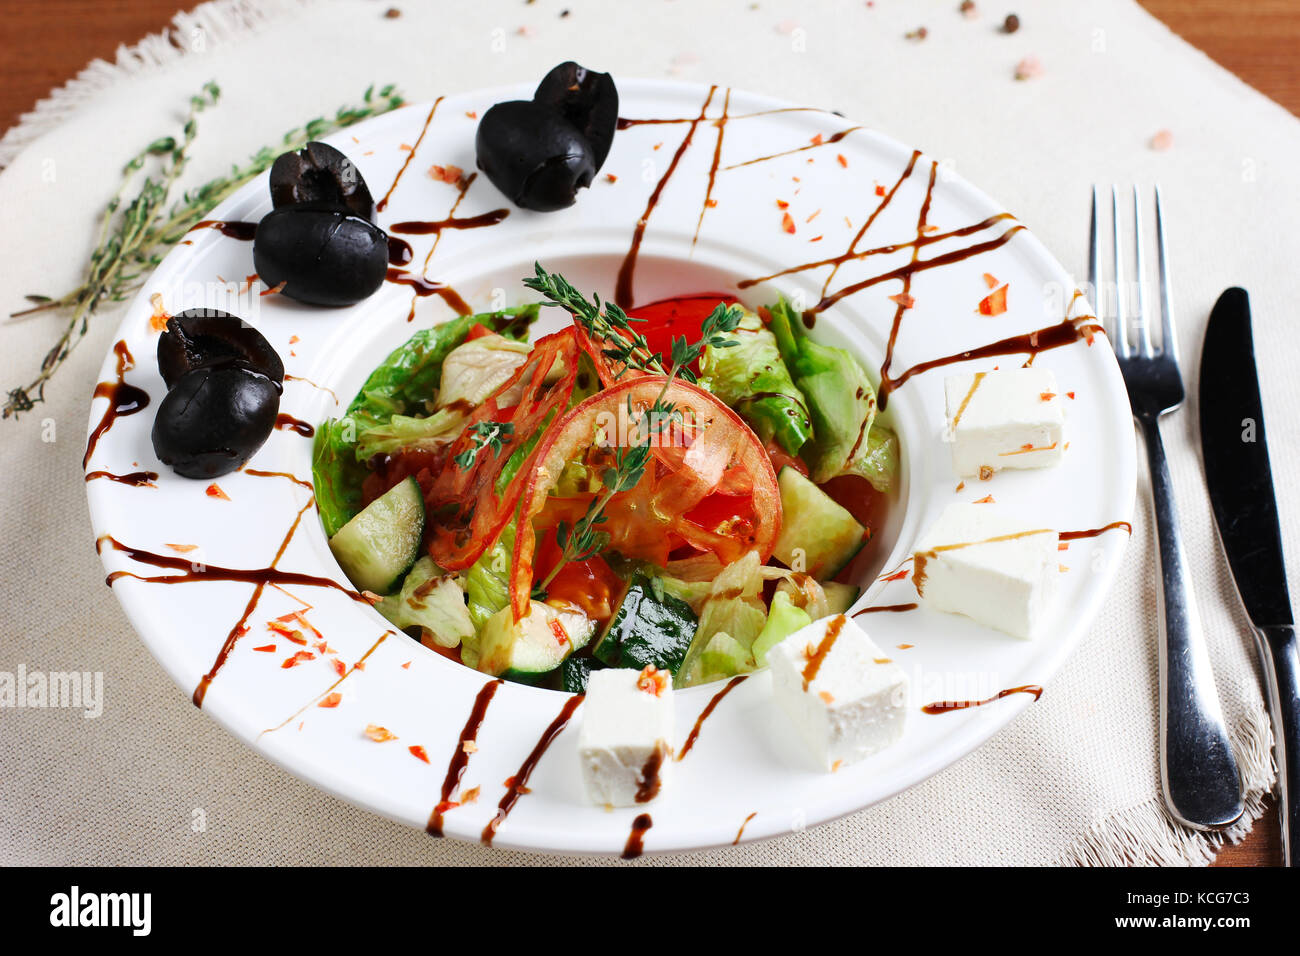 Greek salad in the white deep plate with the fork and knife - Stock Image